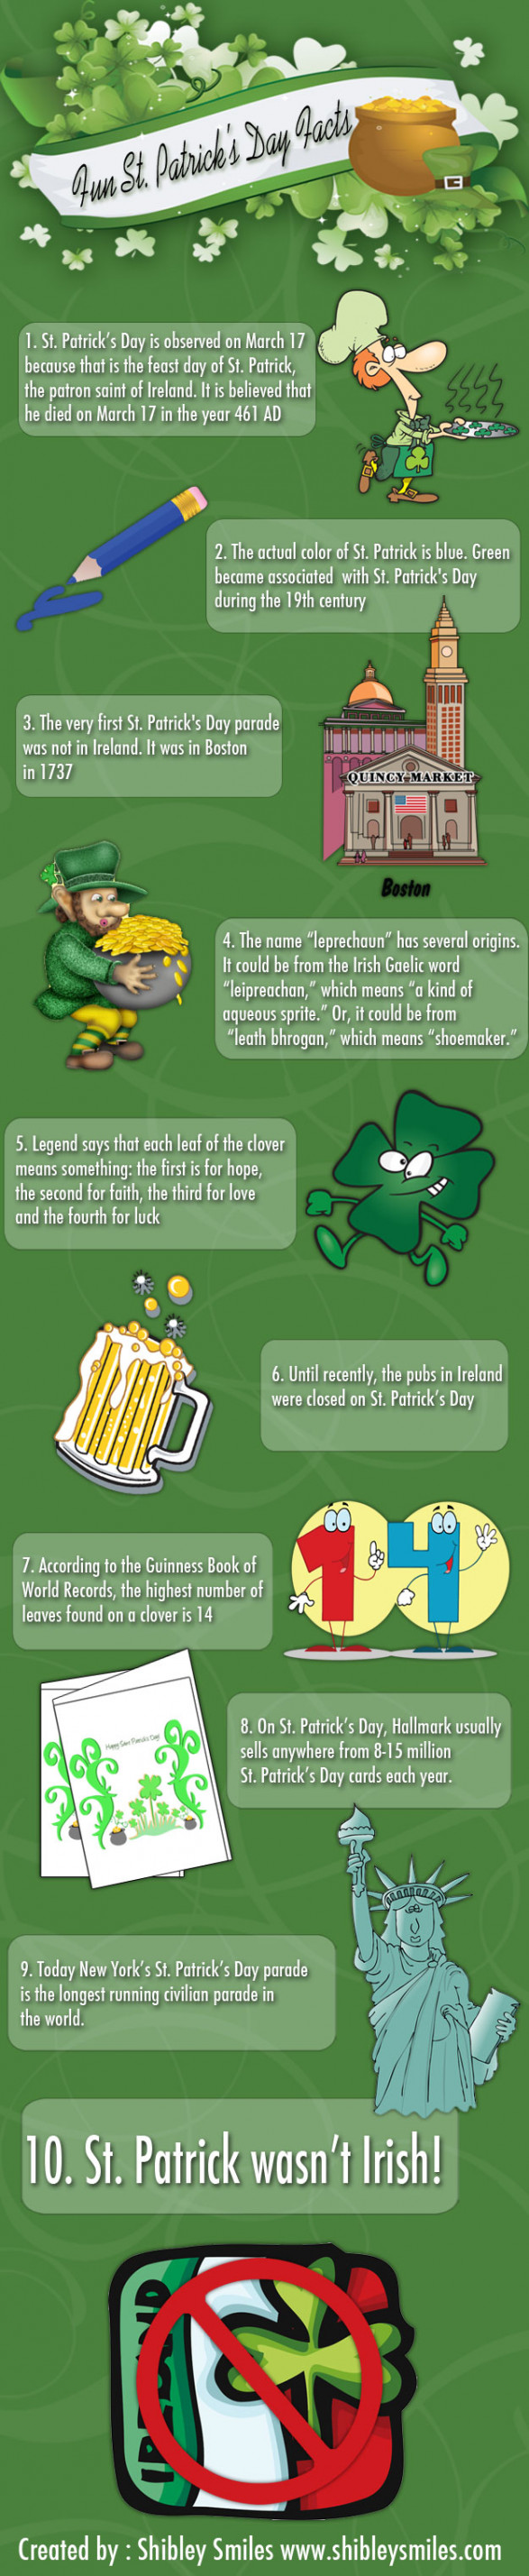 fun st patricks day facts 5029154eb38c1 w587 Fun St. Patricks Day Facts